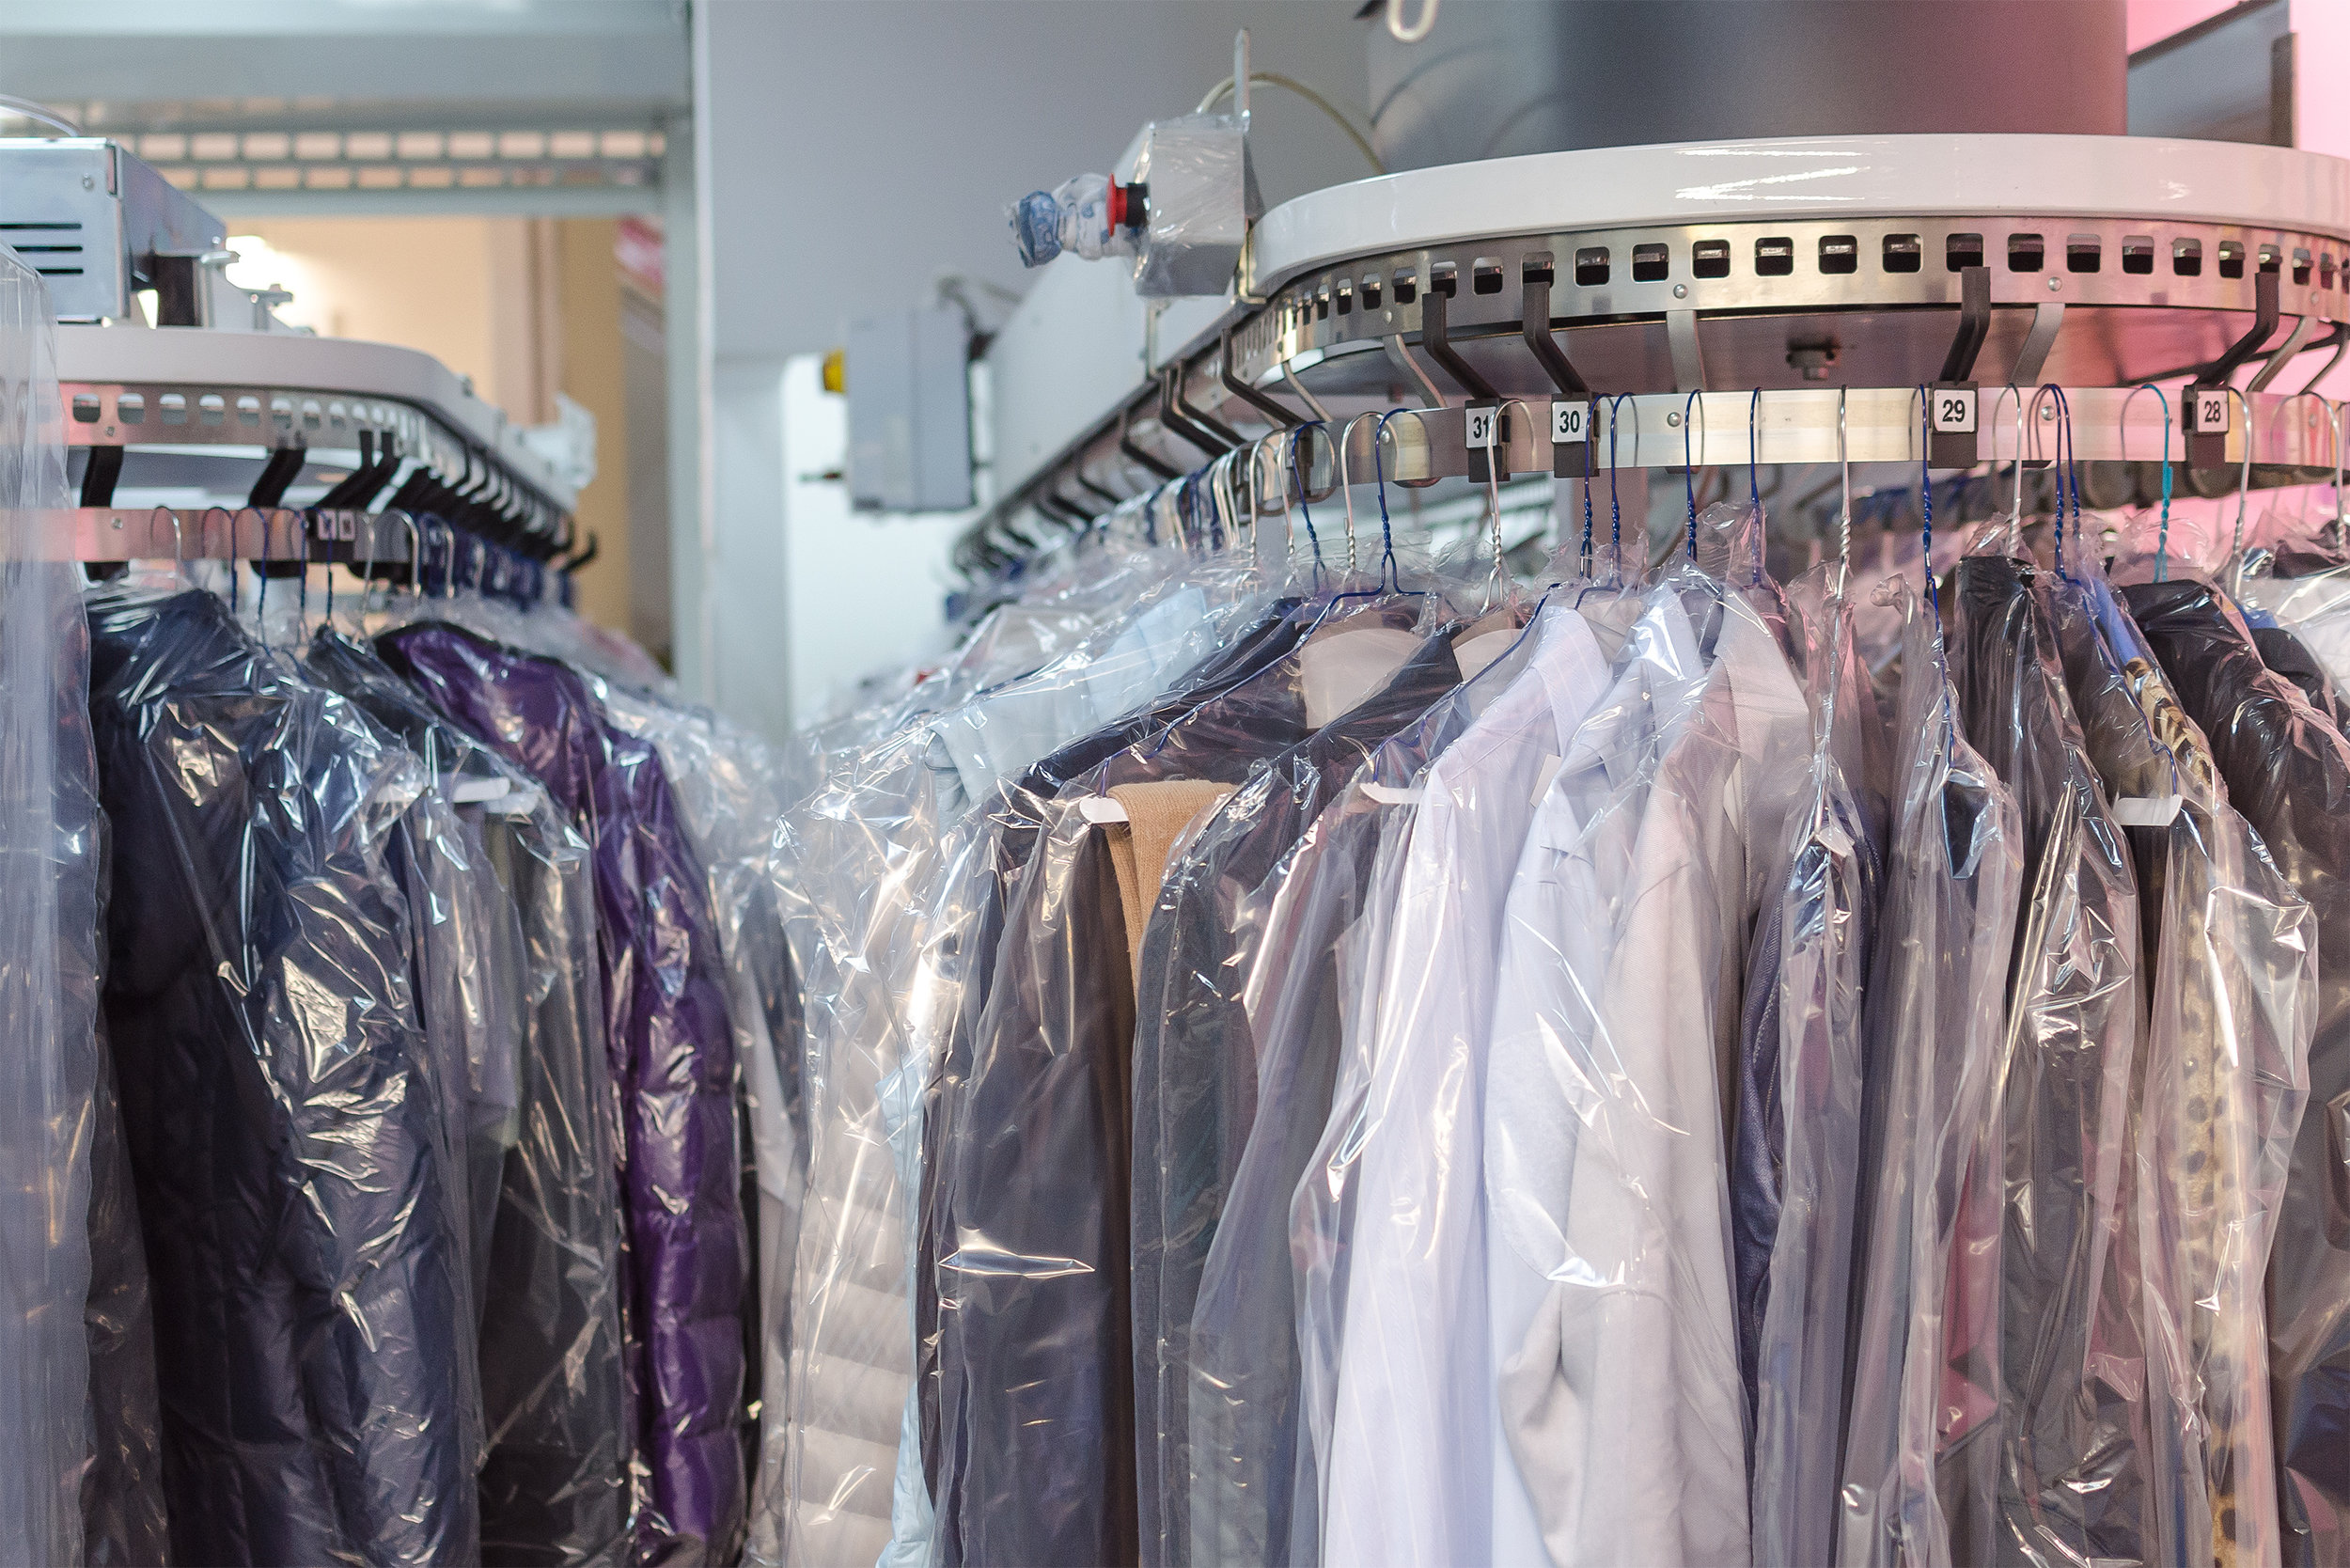 Dry Cleaning Lockers @ 9111 CW Blvd